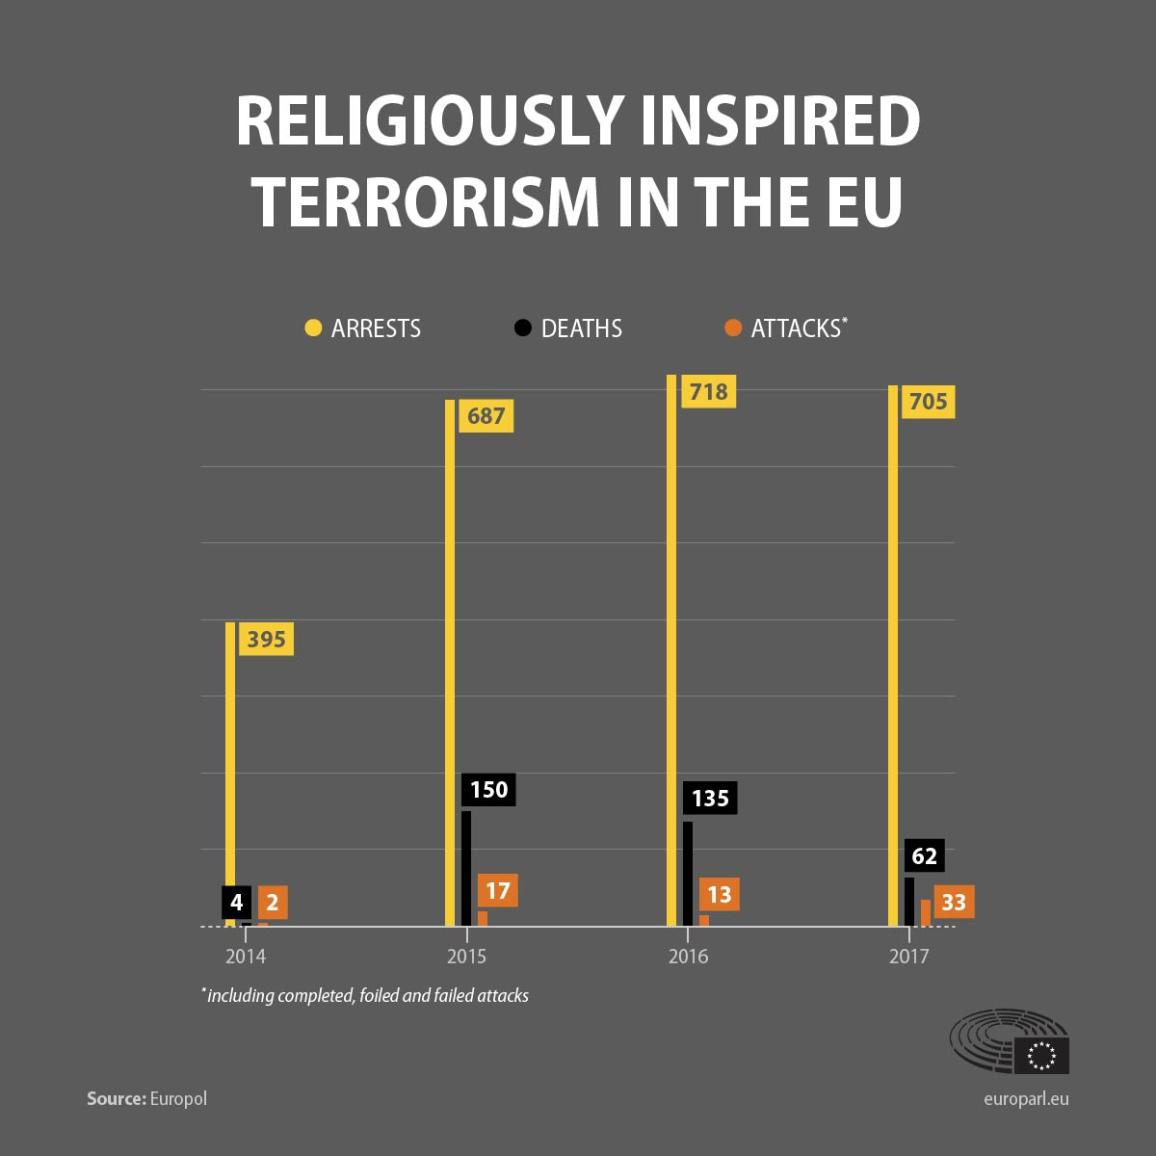 Graphic showing the evolution of terror attacks, deaths and arrests in the EU in  2014-2017.